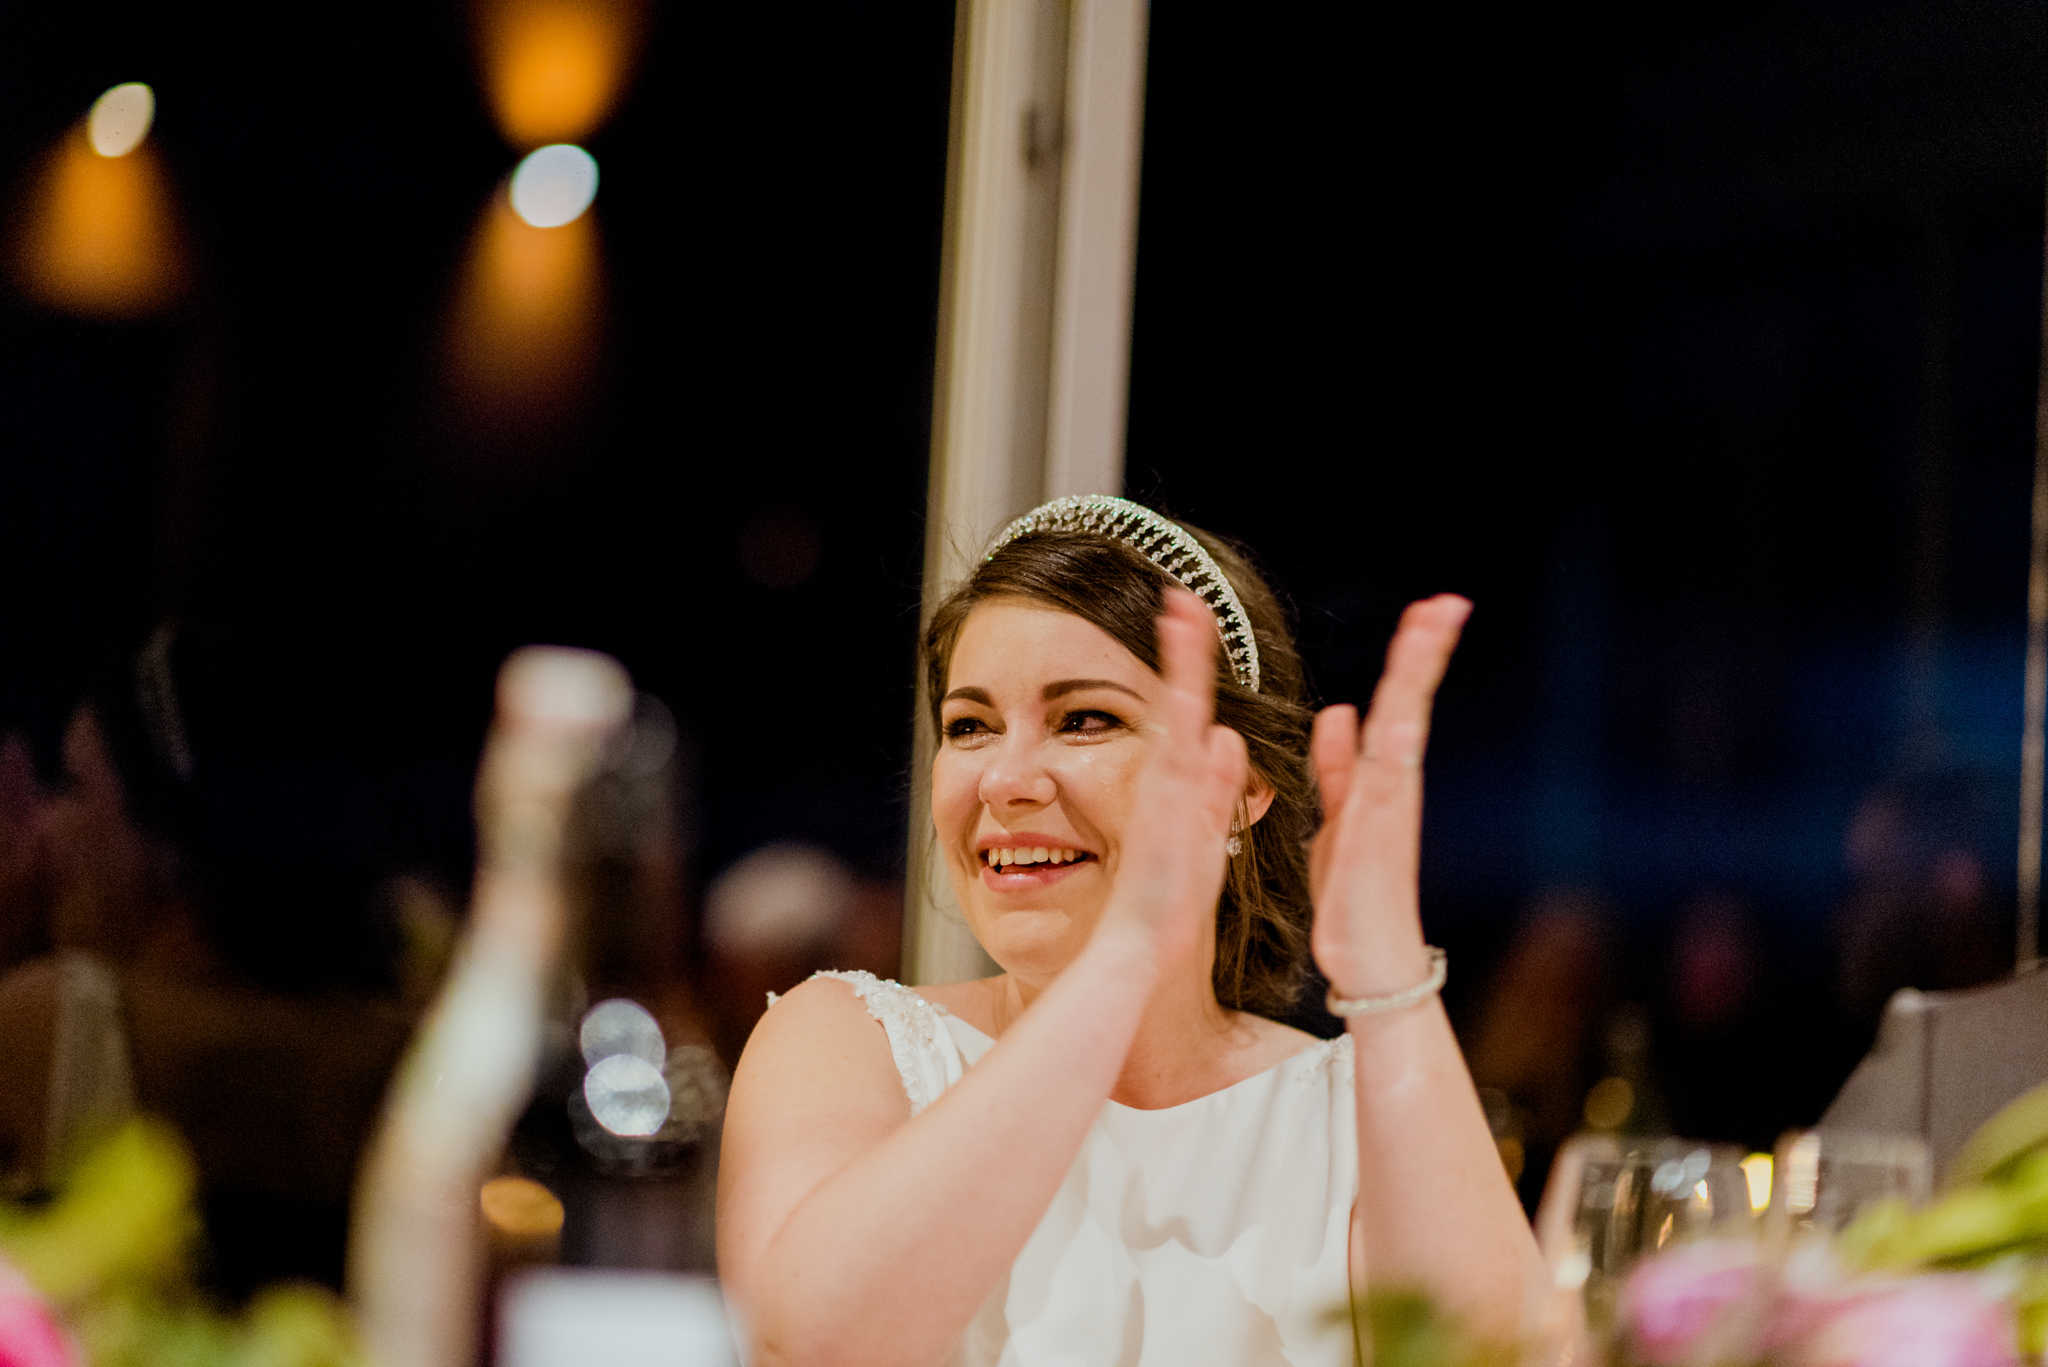 Bride laughing and clapping with tears in her eyes